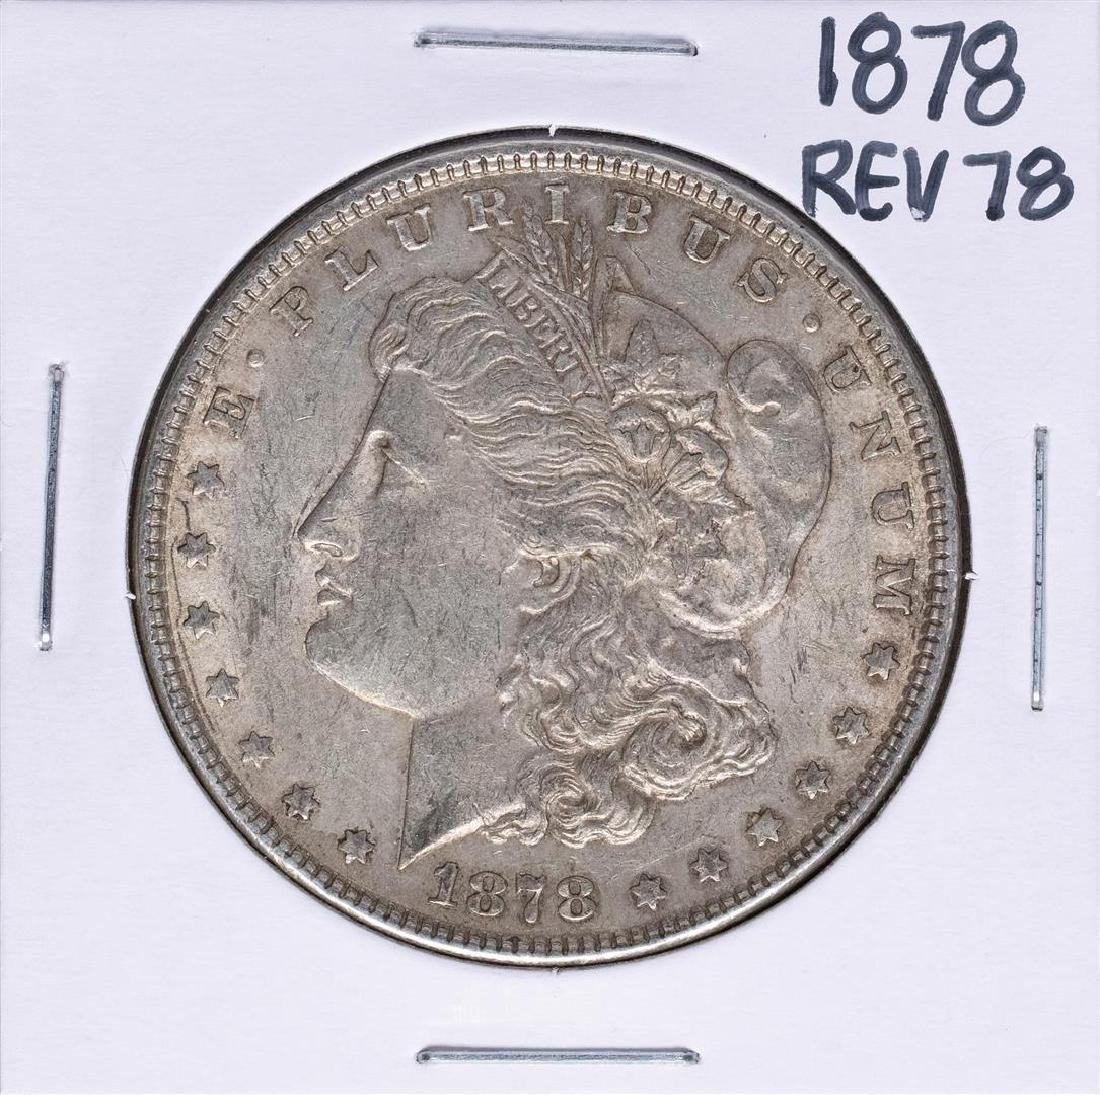 1878 Reverse of 78' $1 Morgan Silver Dollar Coin